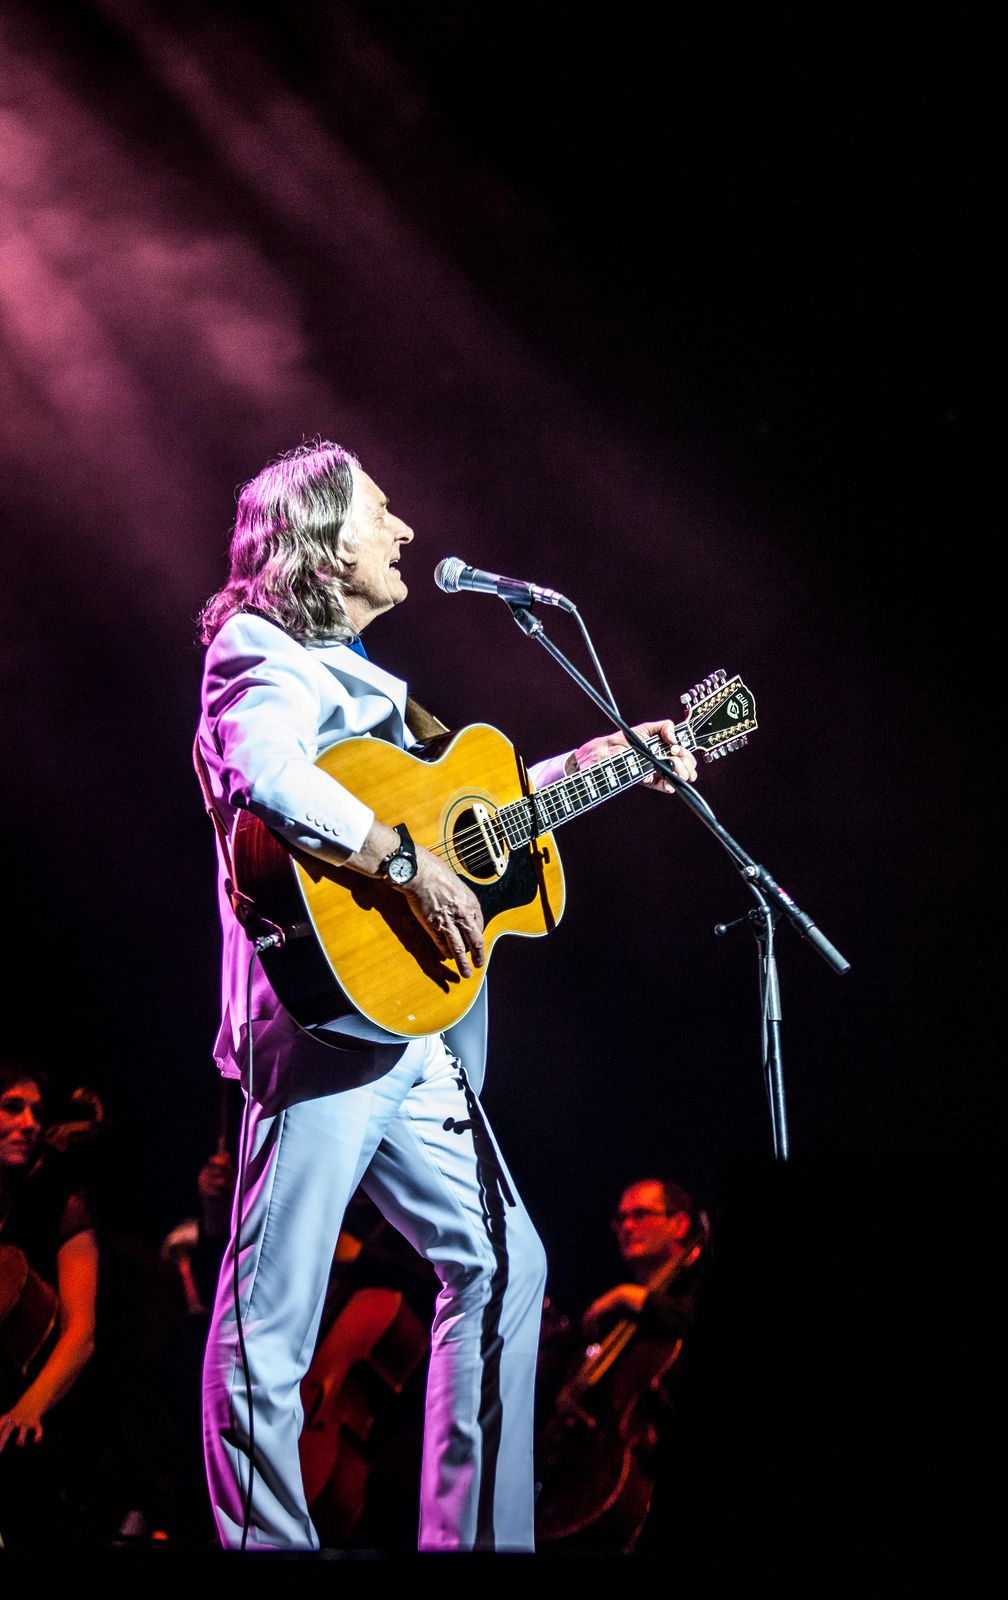 Supertramp - Roger Hodgson